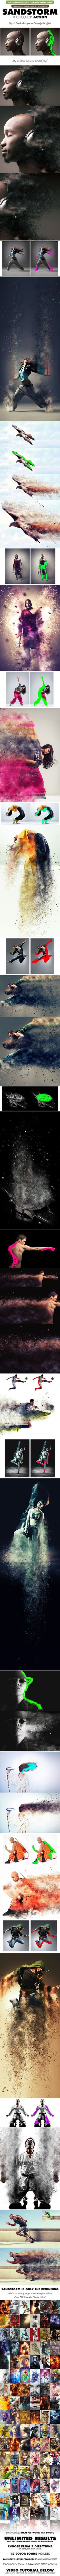 SandStorm #Photoshop Action - Photo Effects Actions